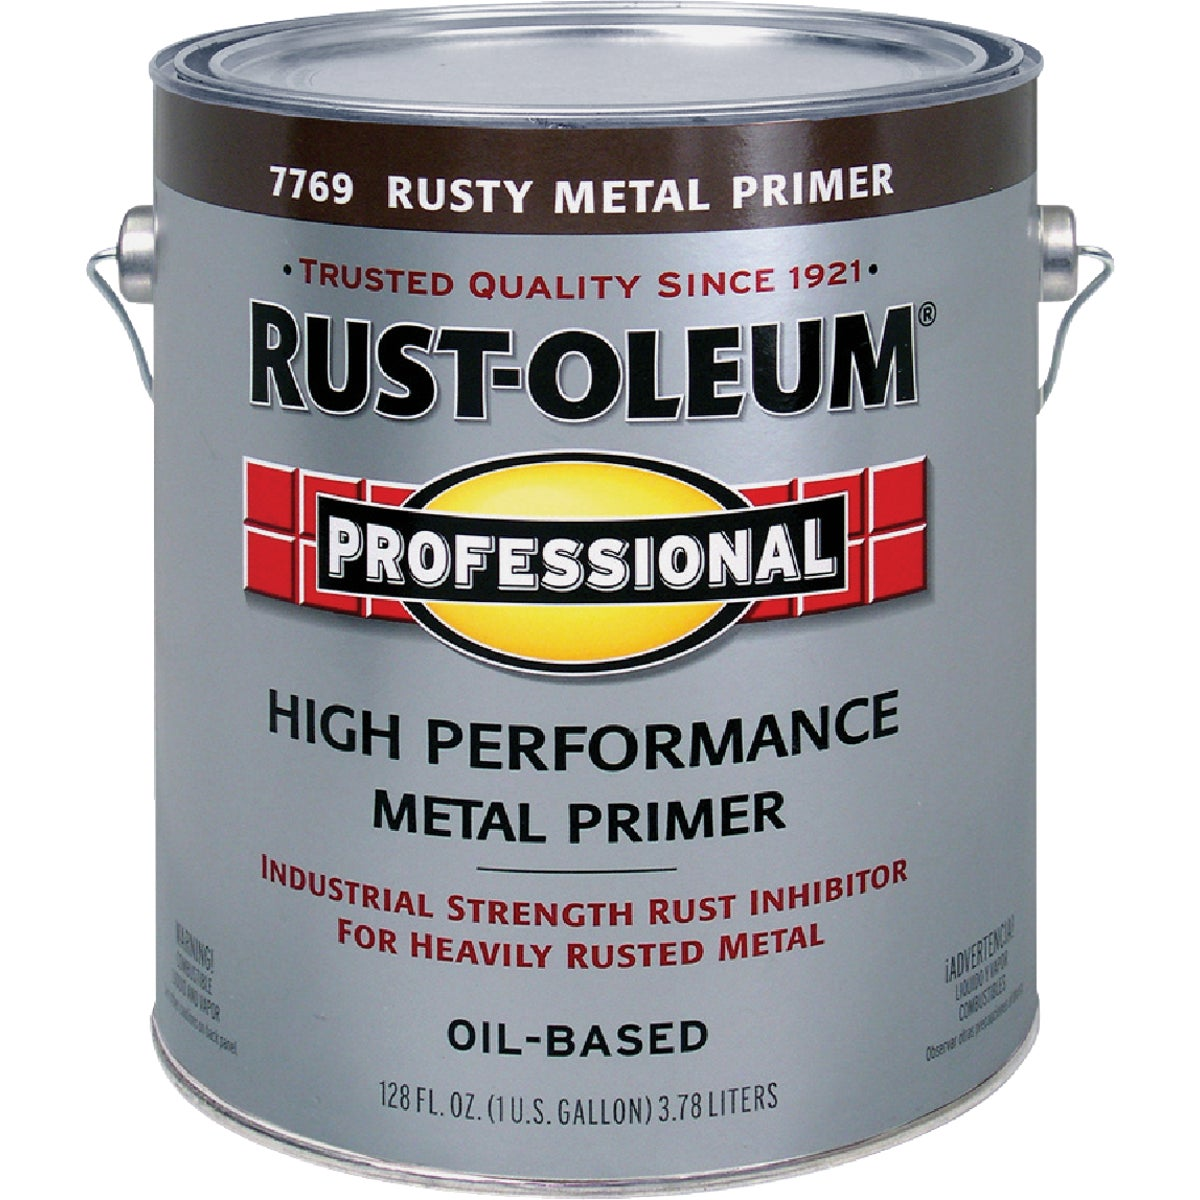 RED RUSTY METAL PRIMER - 7769-402 by Rustoleum